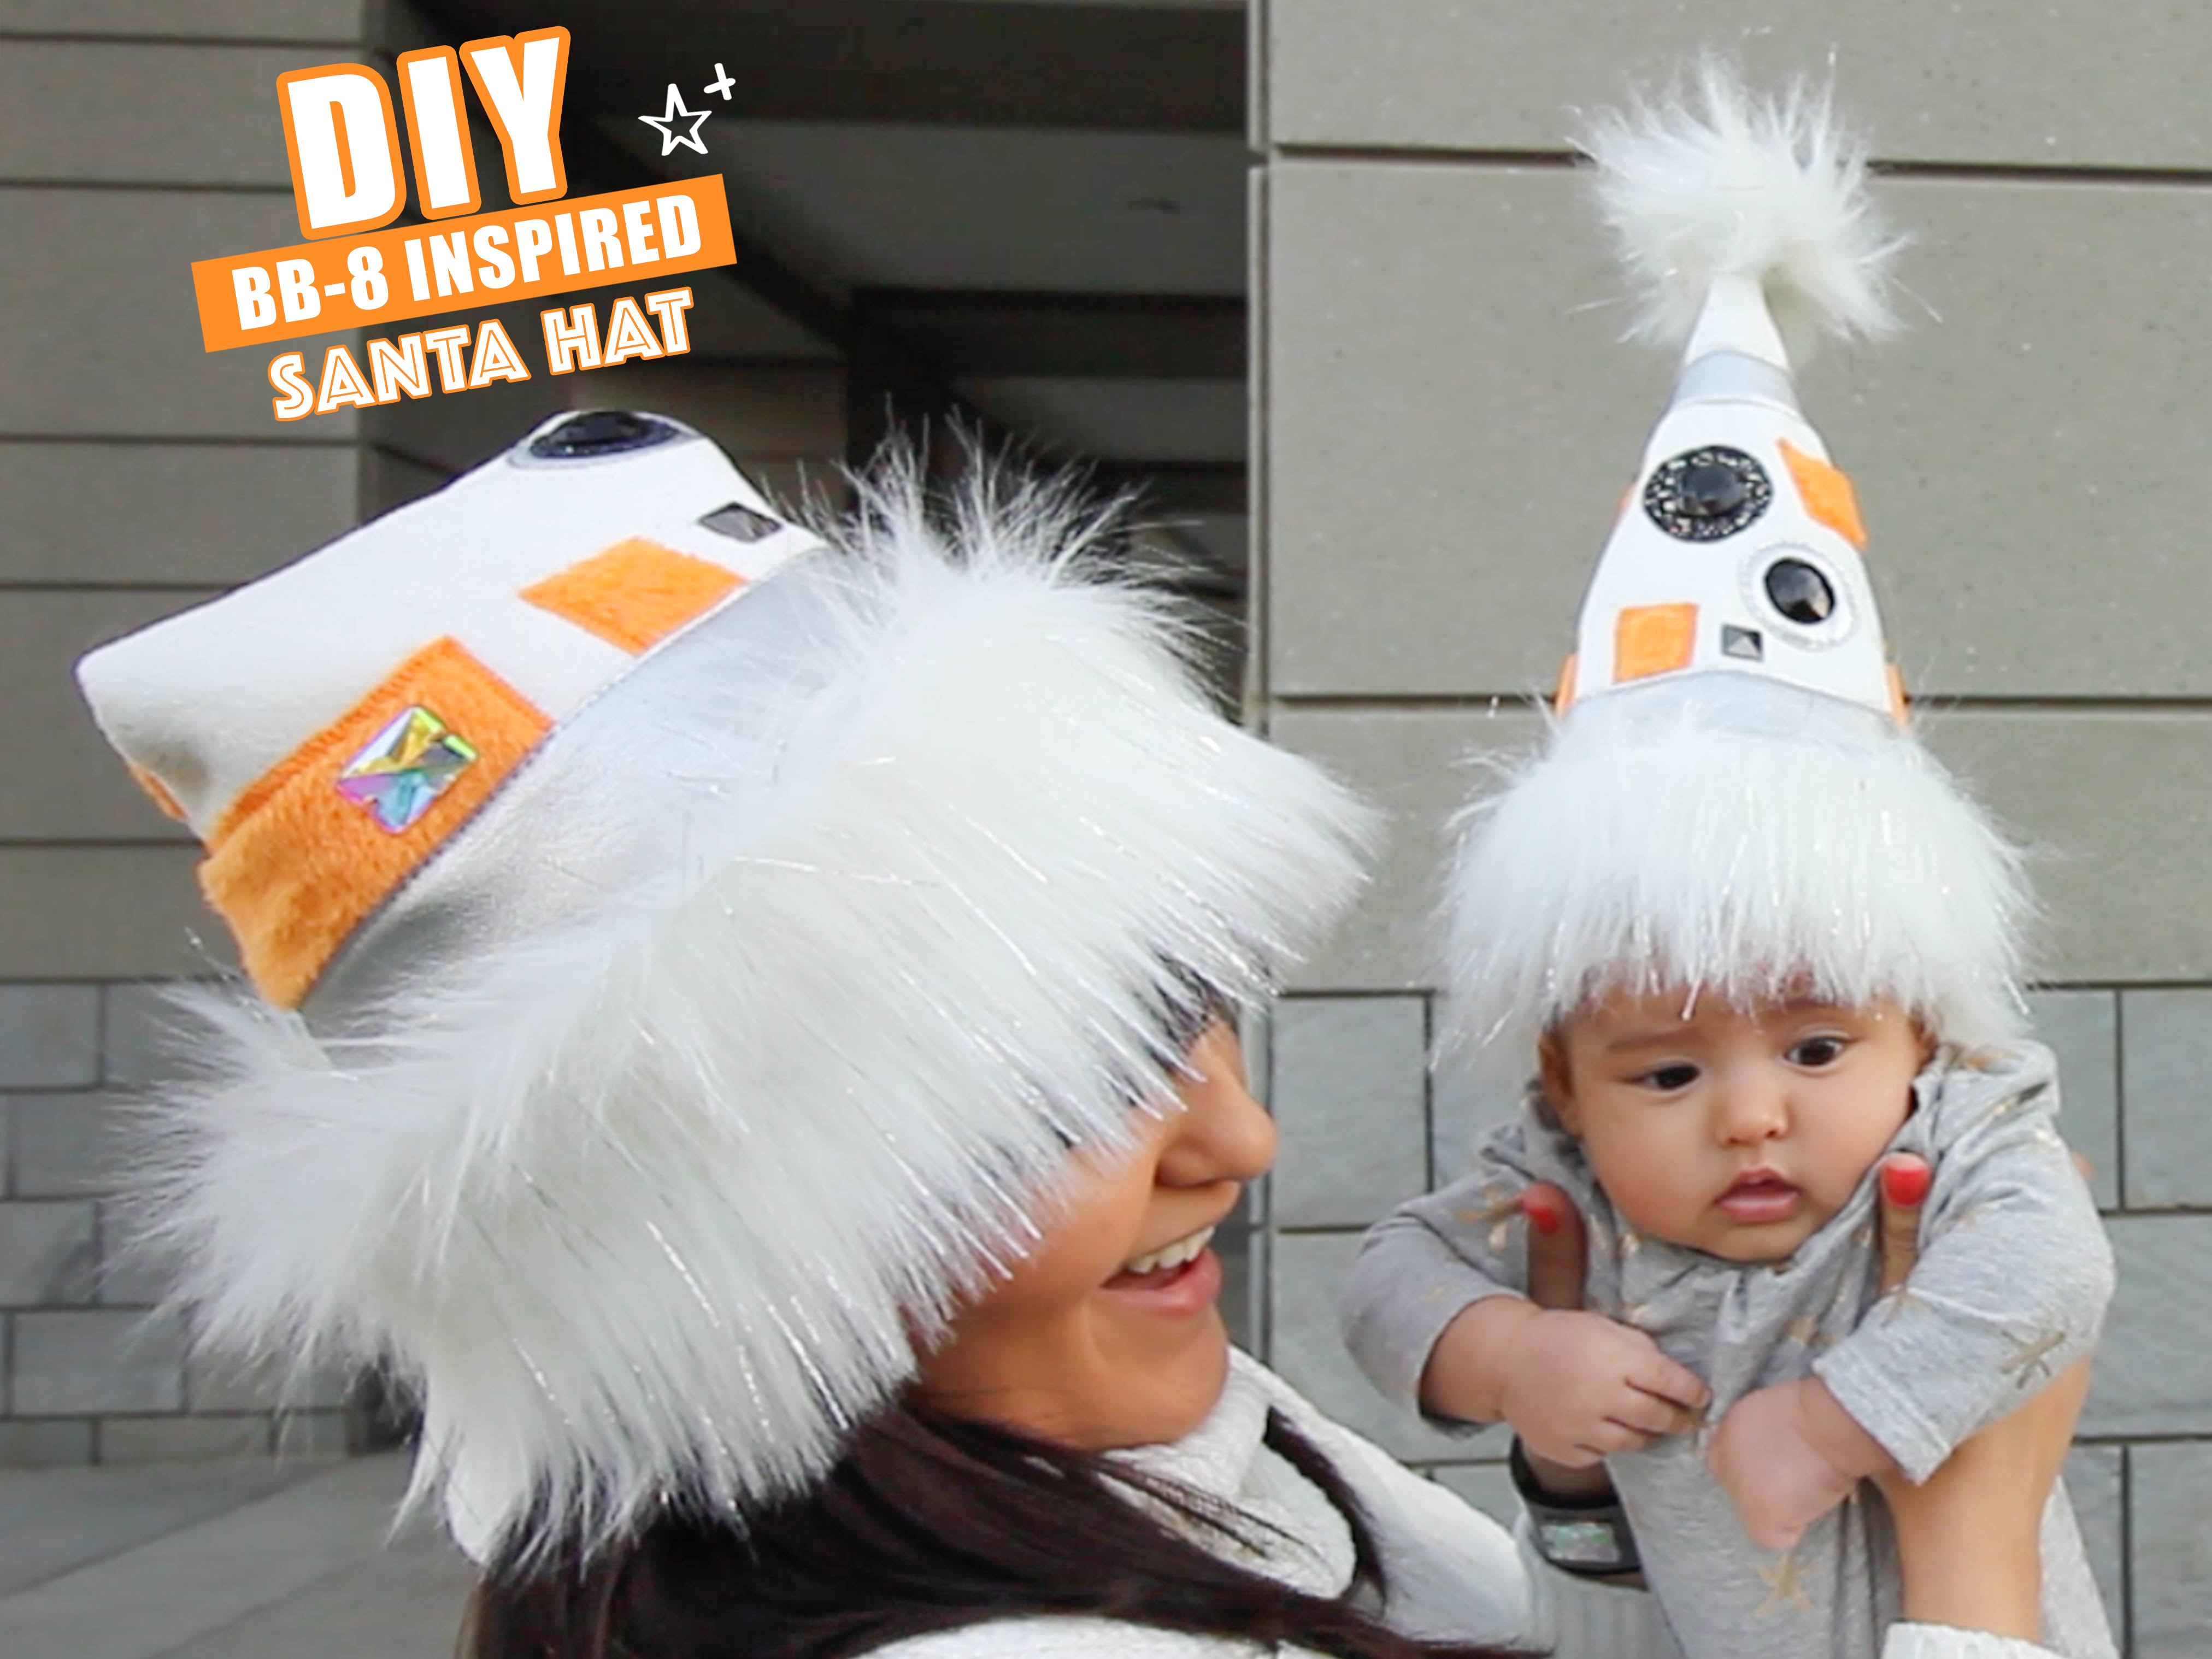 Picture of Star Wars BB8 Inspired Santa Hat